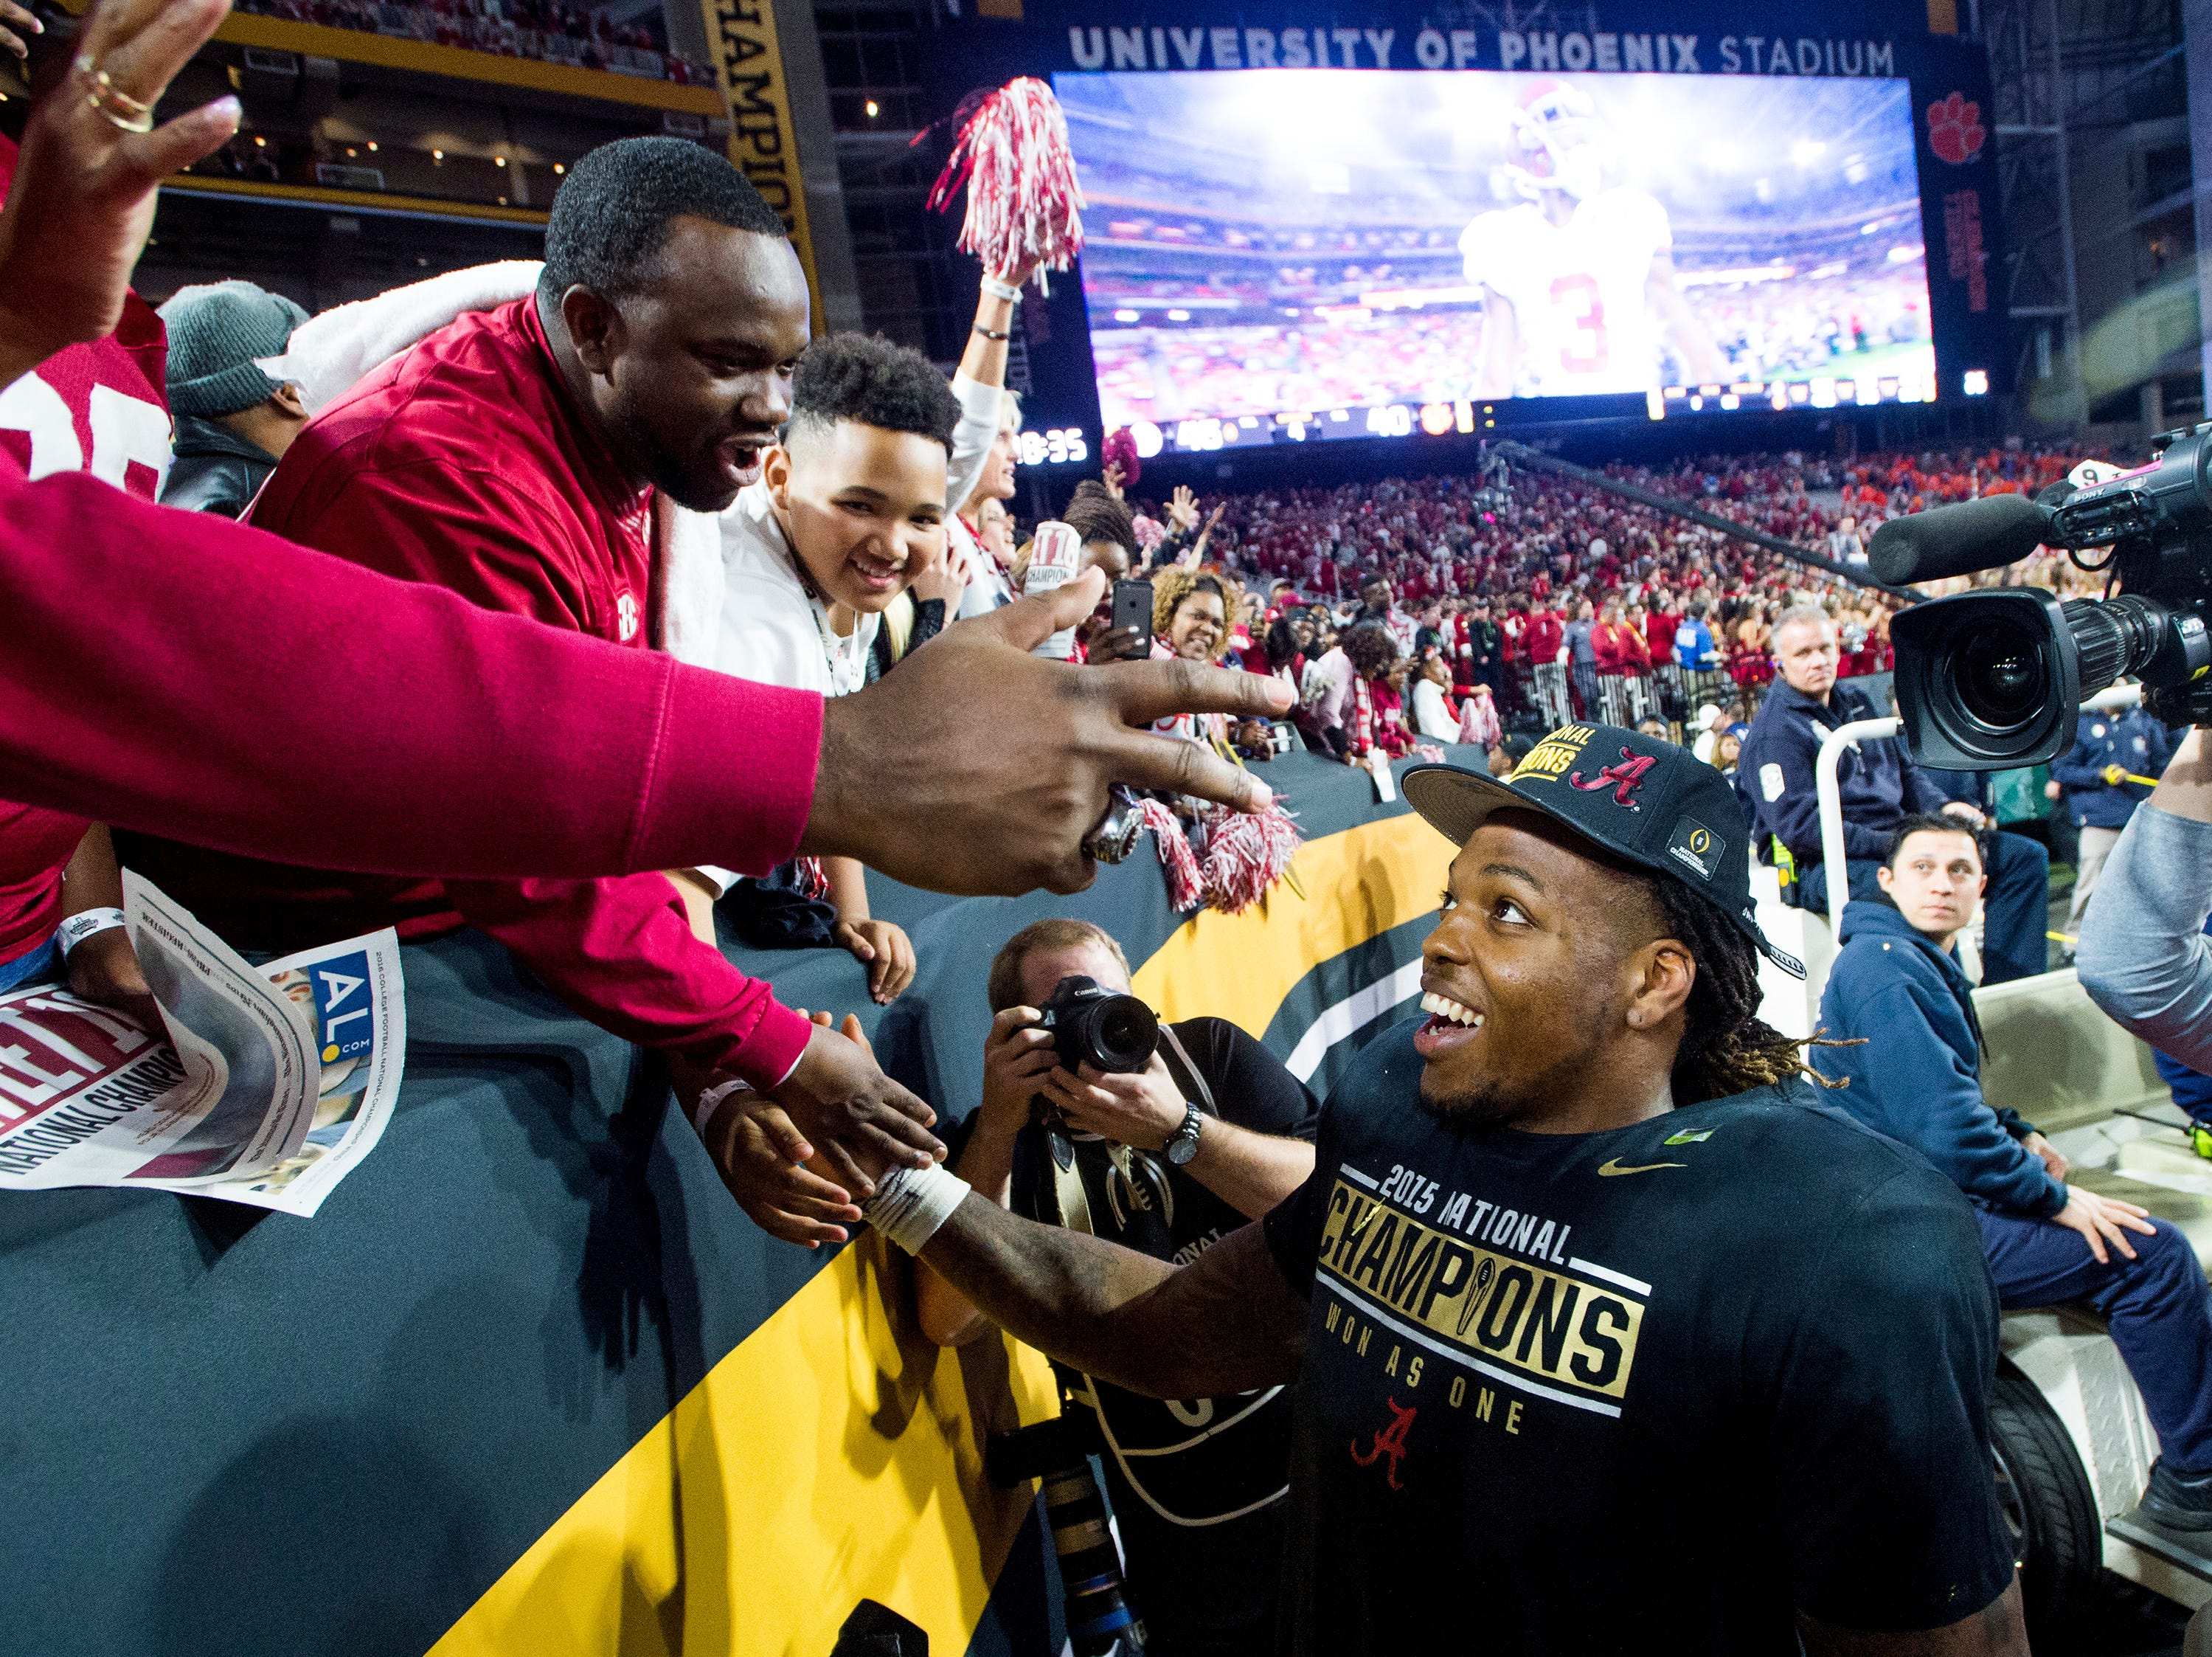 Alabama running back Derrick Henry (2) celebrates with fans in the College Football Playoff Championship Game on Monday January 11, 2016 at University of Phoenix Stadium in Glendale, Az.